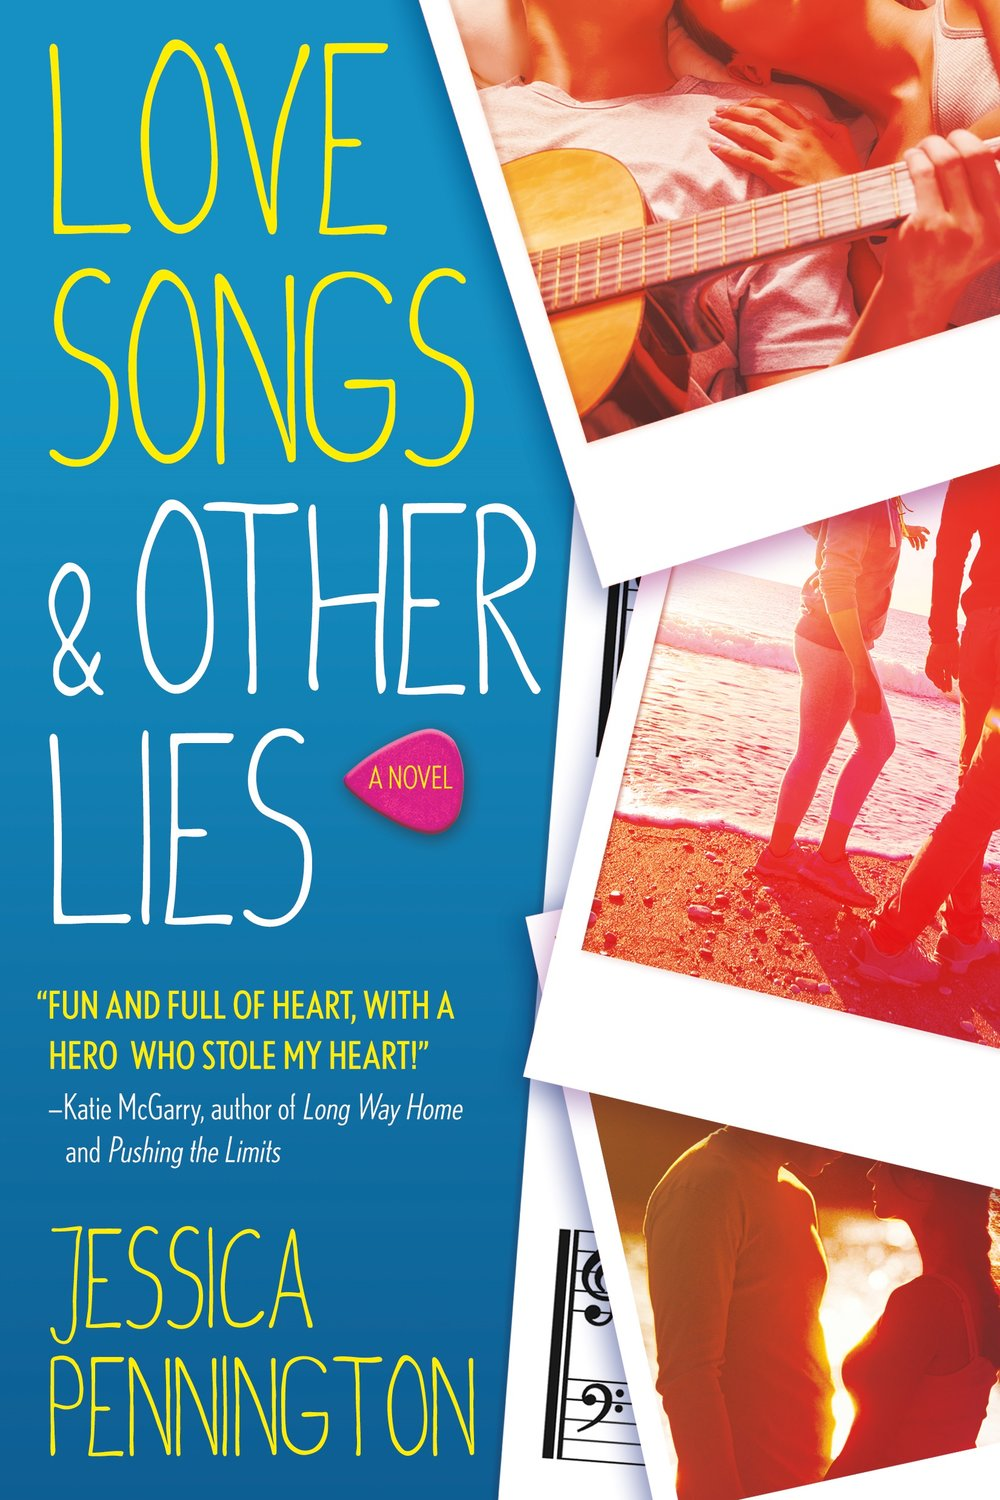 Happy book birthday to LOVE SONGS & OTHER LIES by Jessica Pennington! - Love Songs & Other Lies is the debut romance from Jessica Pennington that Katie McGarry calls